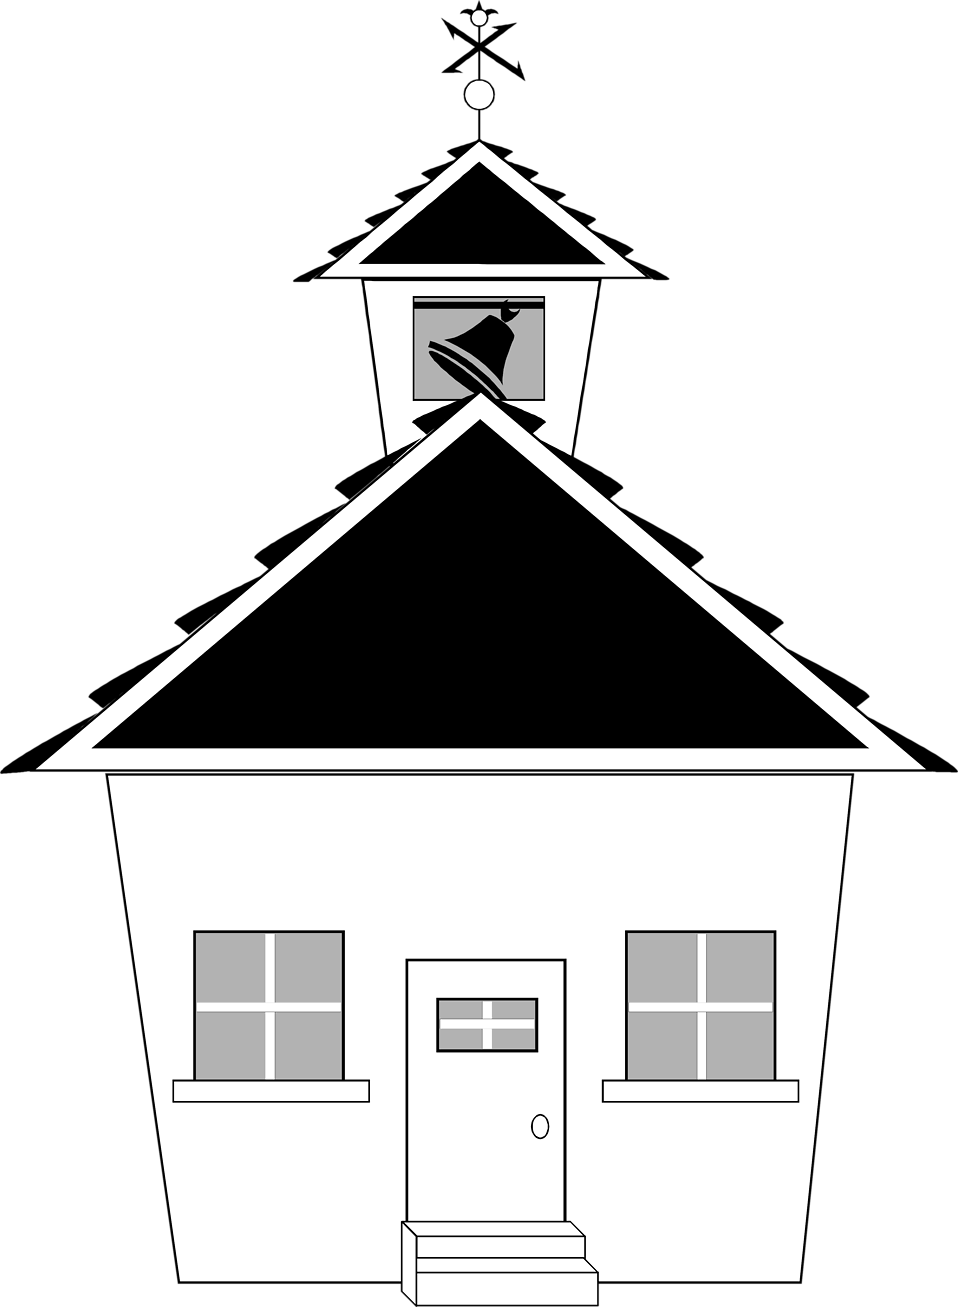 png royalty free download School building clipart black and white. Free stock photo illustration